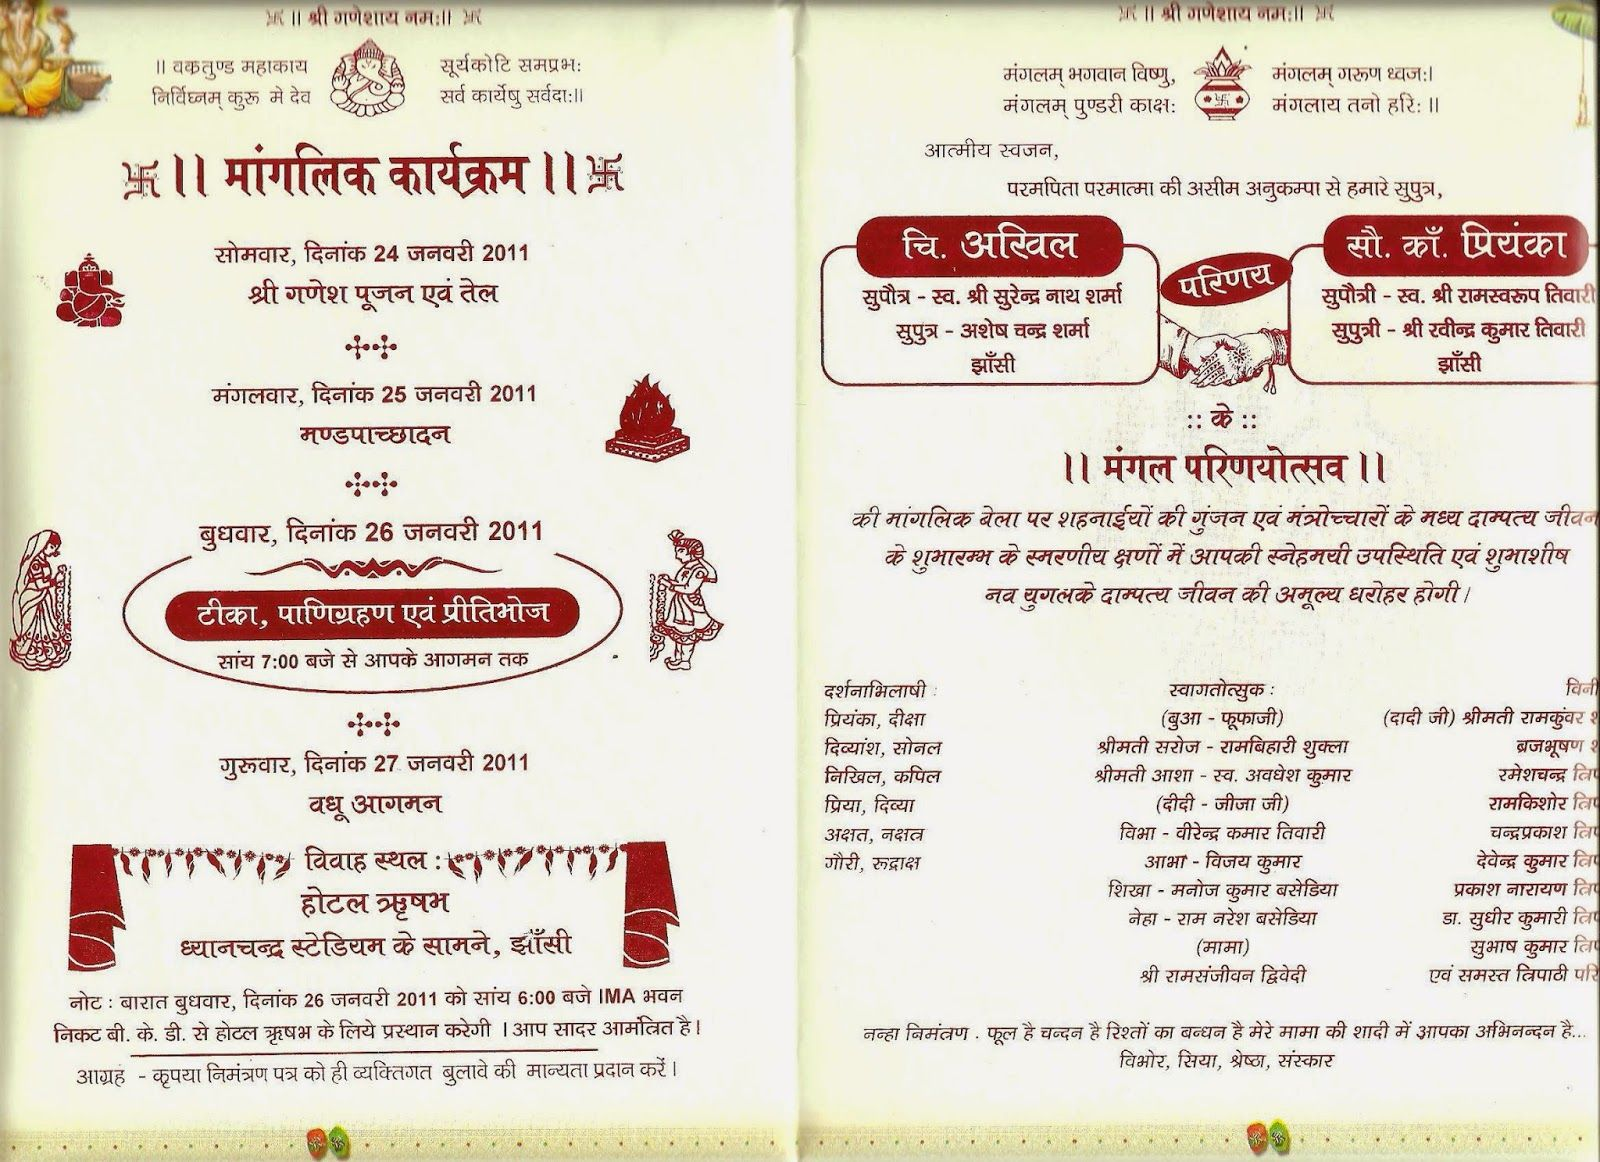 Shadi Ki Patrika Matter In Hindi7 Jpg 1600 1162 Hindu Wedding Cards Marriage Cards Wedding Card Format